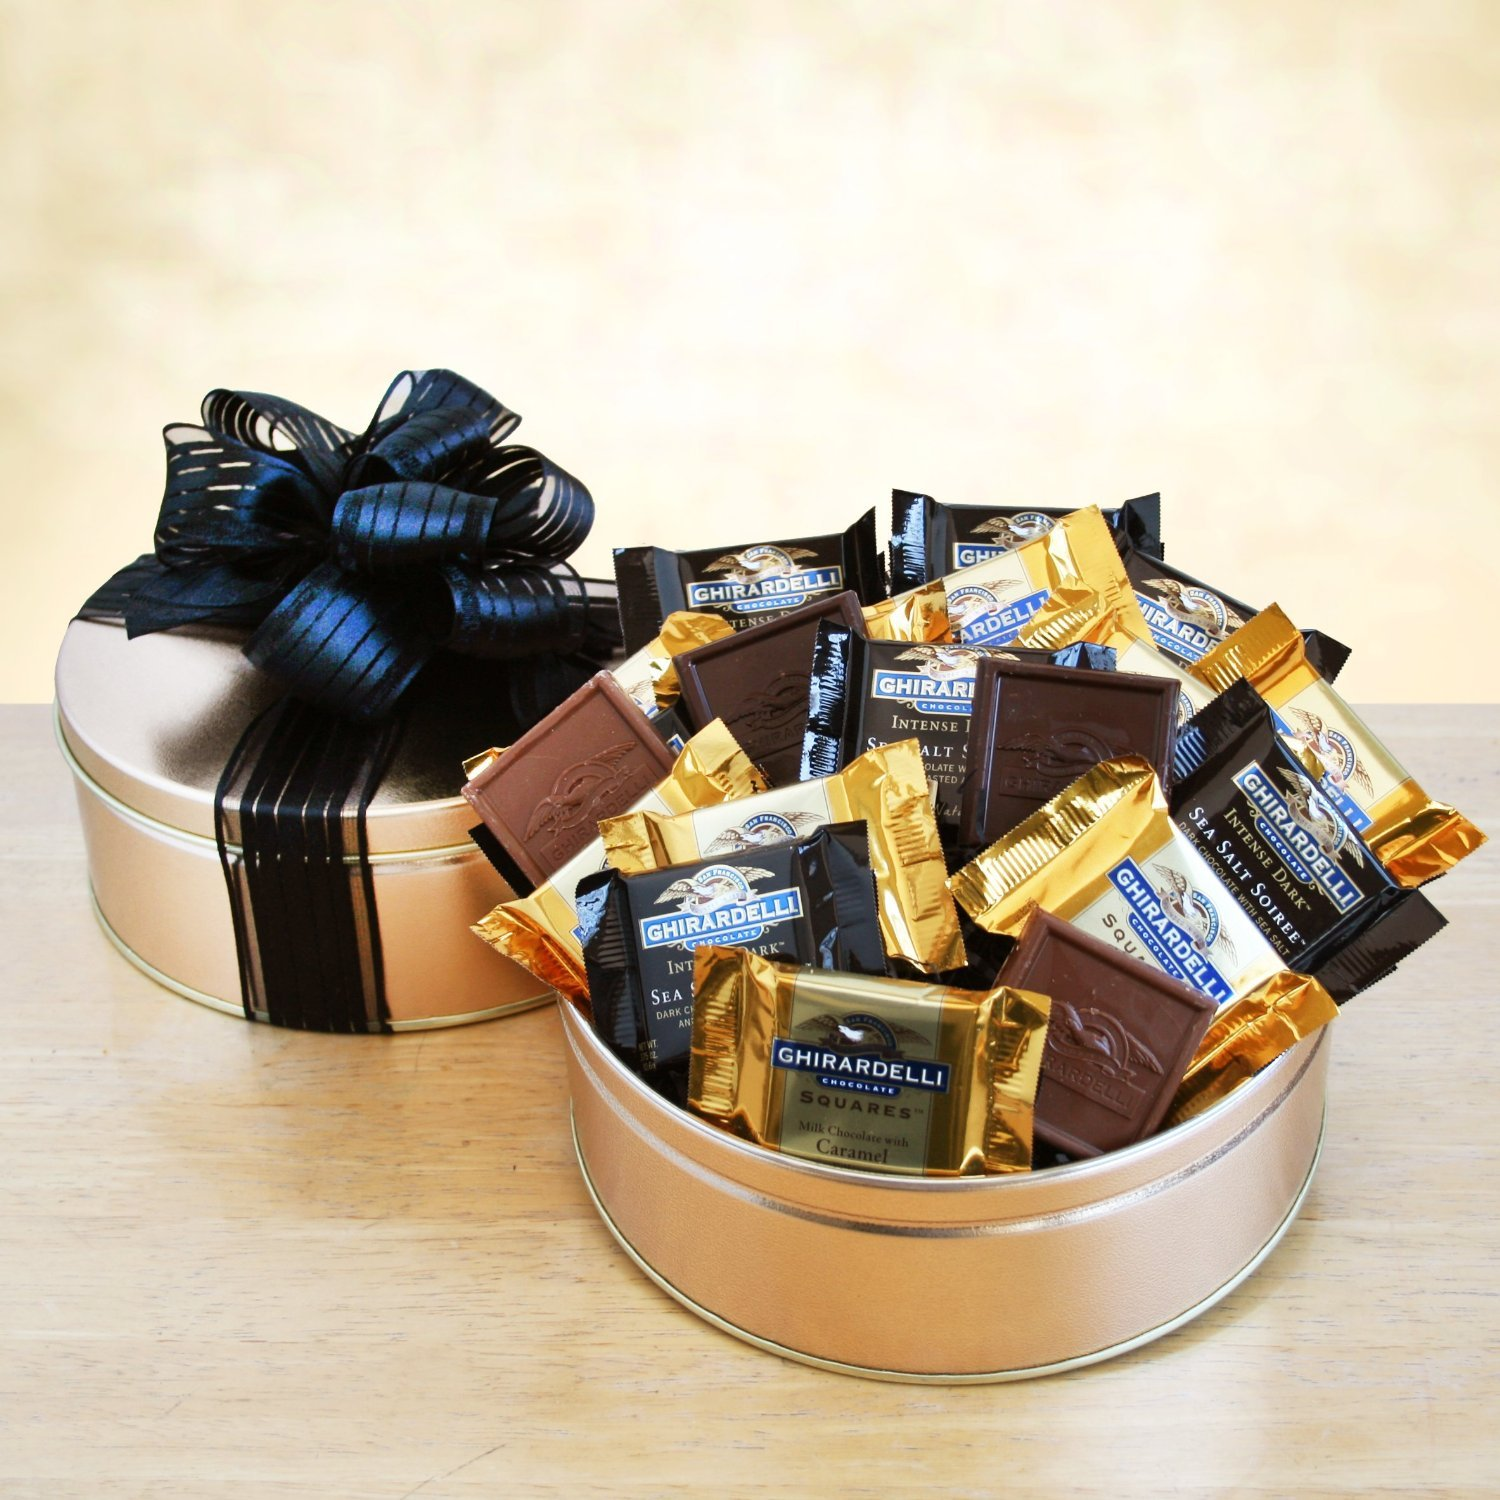 Amazon.com : Ghirardelli Chocolate Corporate Gift Tin : Grocery ...